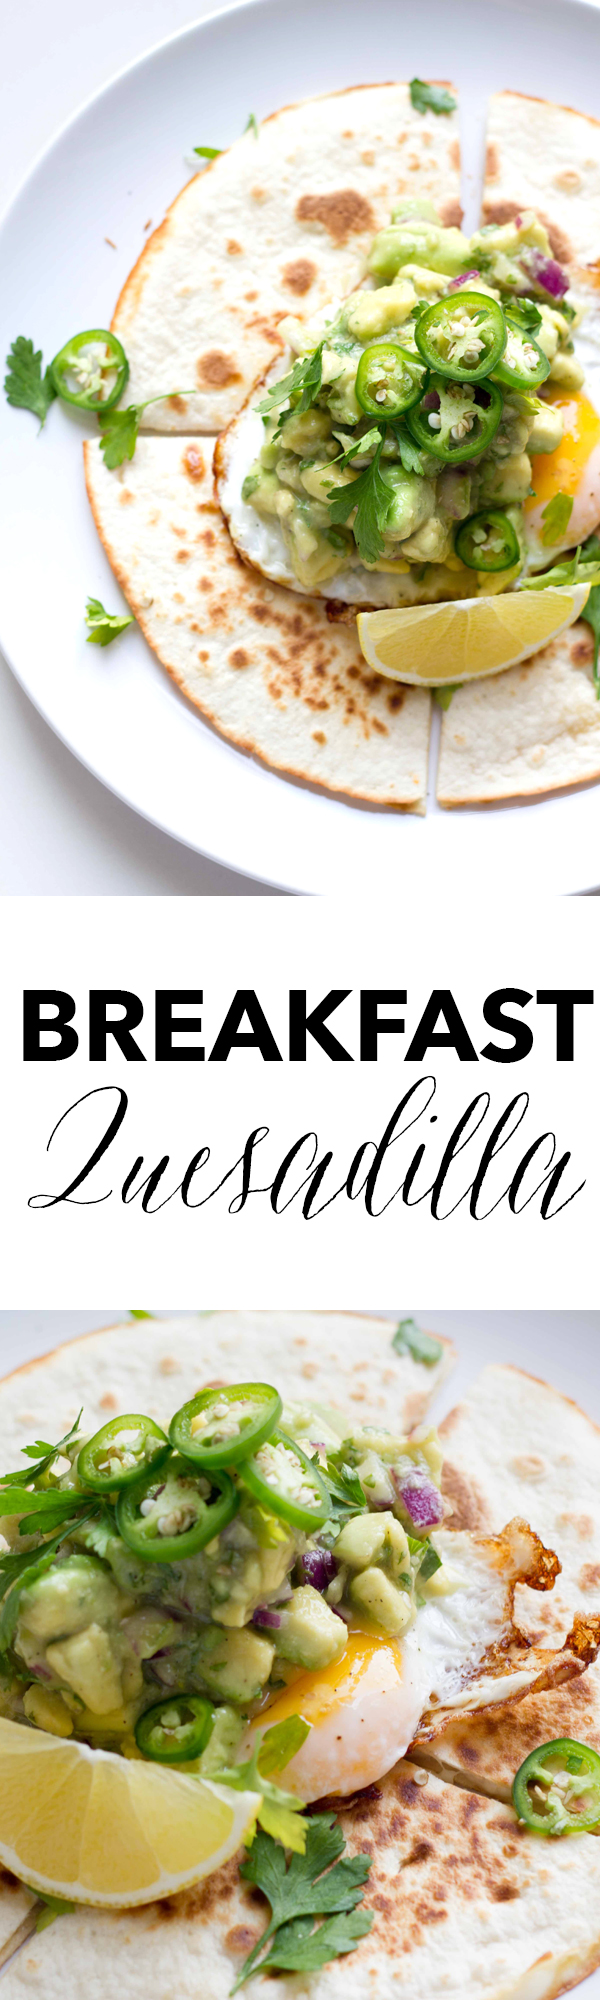 This breakfast quesadilla recipe is filled with melted mozzarella cheese, topped with a fried egg and some spicy guacamole. It definitely packs a breakfast punch! www.seriousspice.com